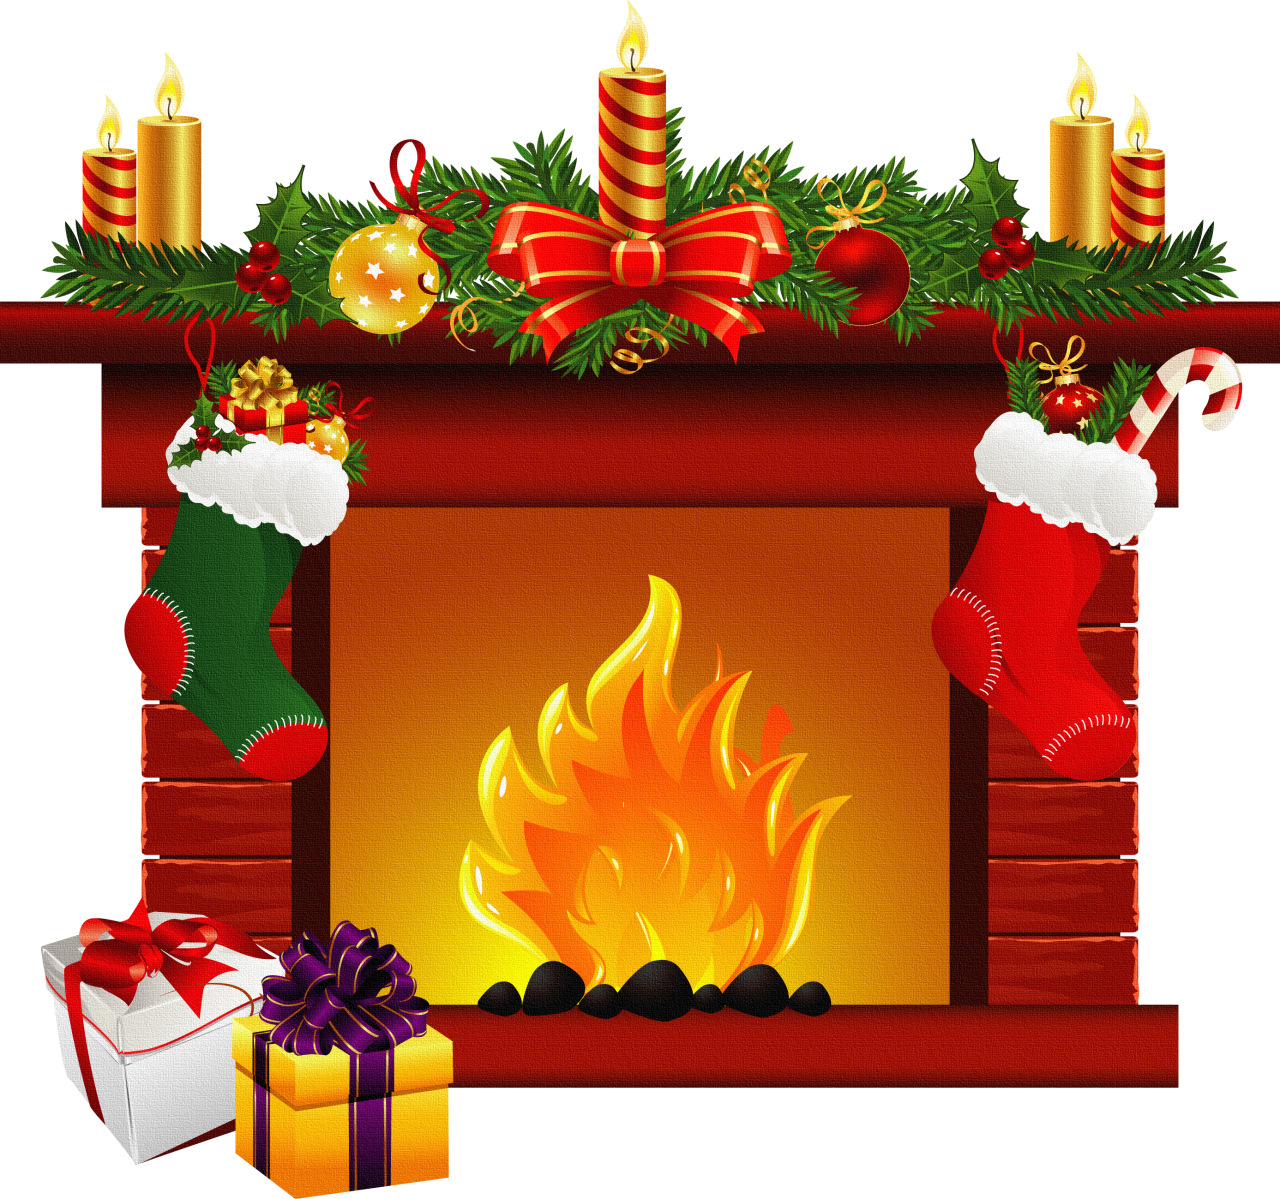 Fireplace clipart old fashioned Fireplace clipart clipart image 2